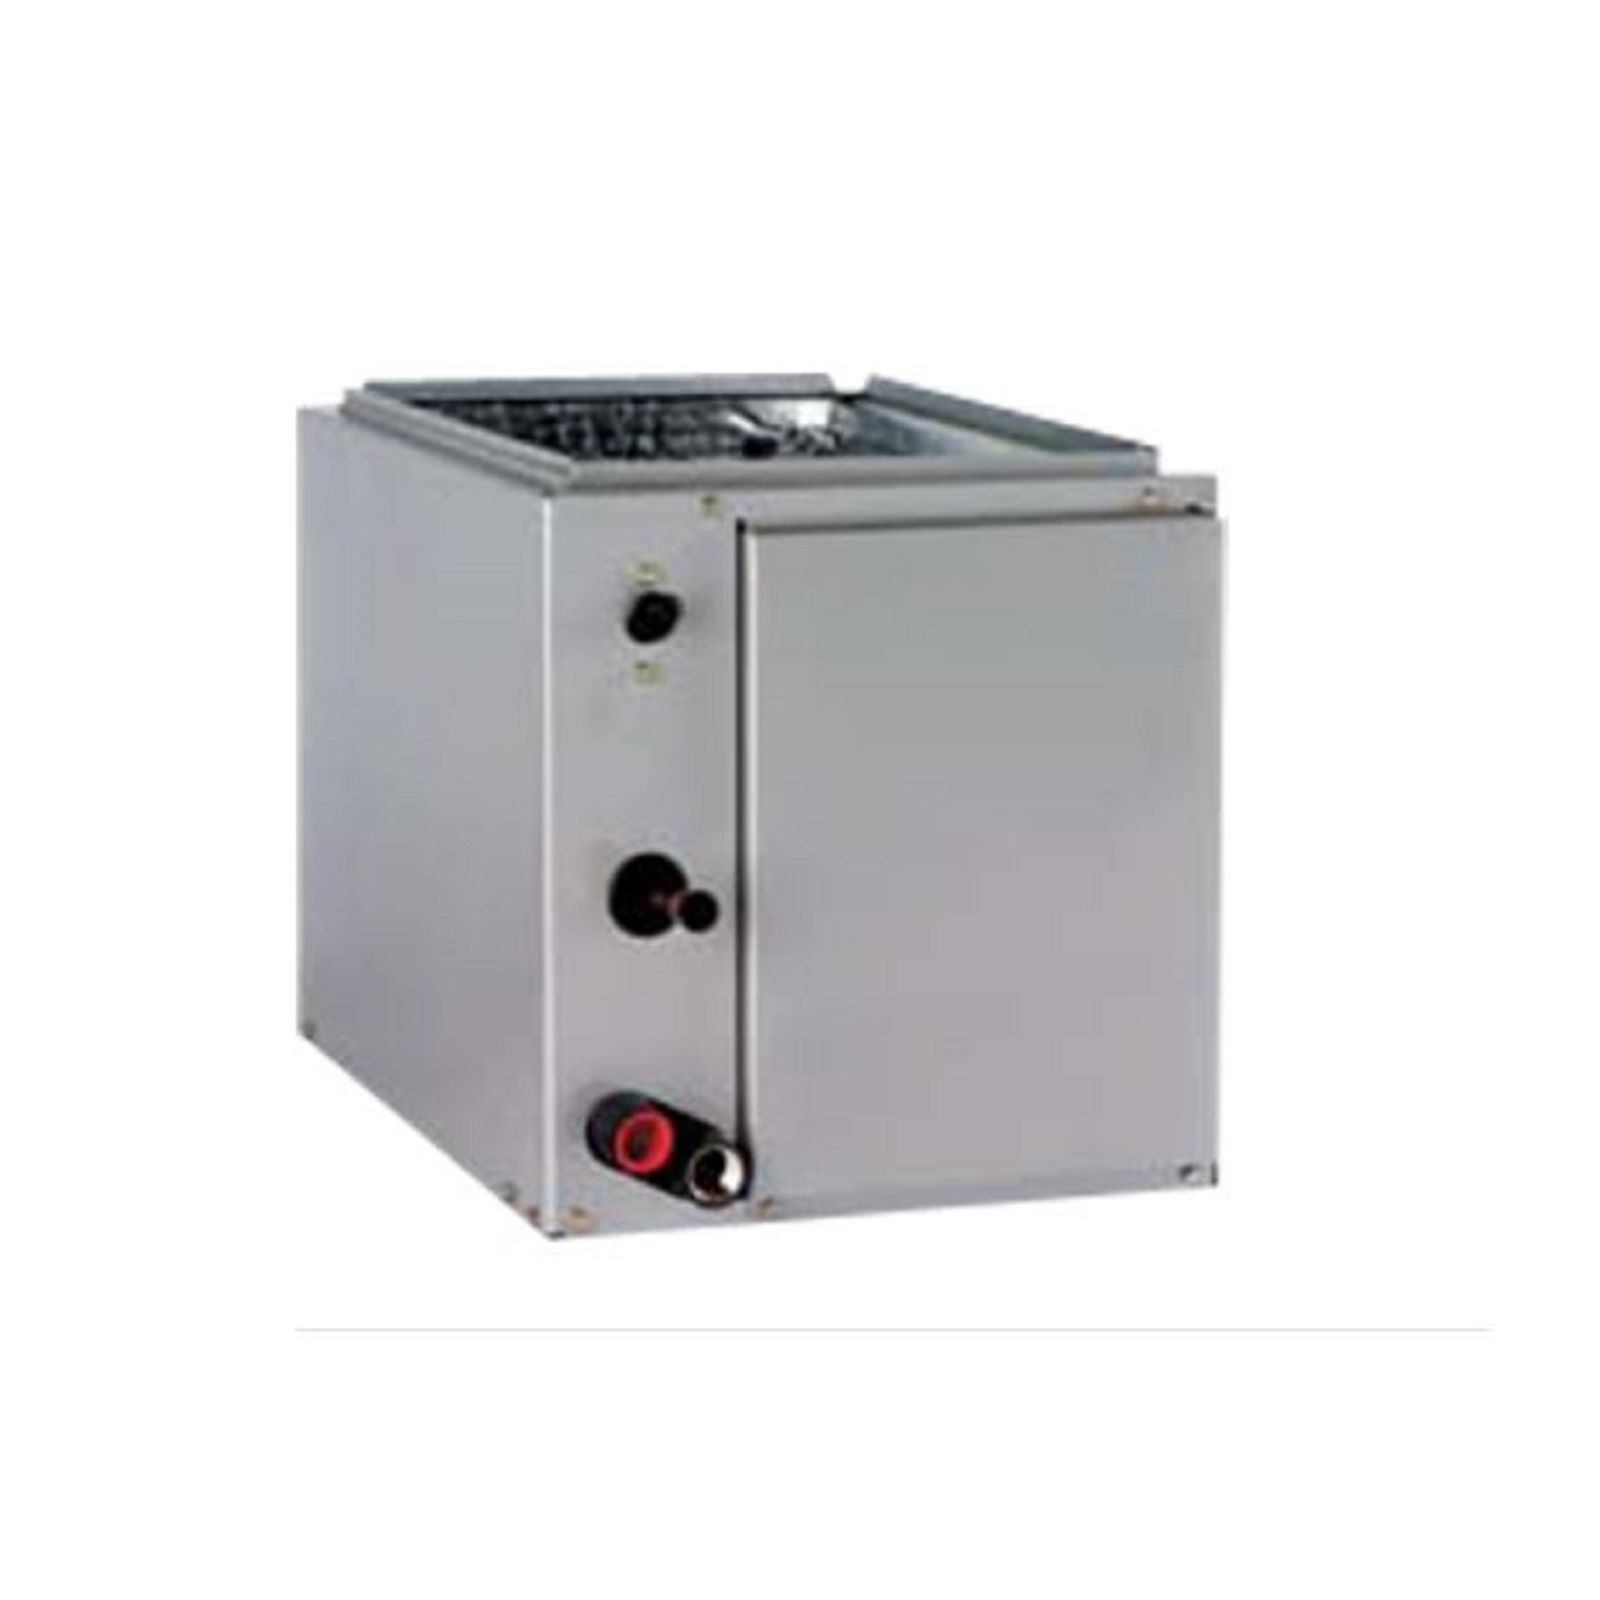 "Tempstar END4X60L24A - 5 Ton, R410A, Cased Up/Down Flow, N Type Evaporator Coil, With TXV, 24.5"" Wide"